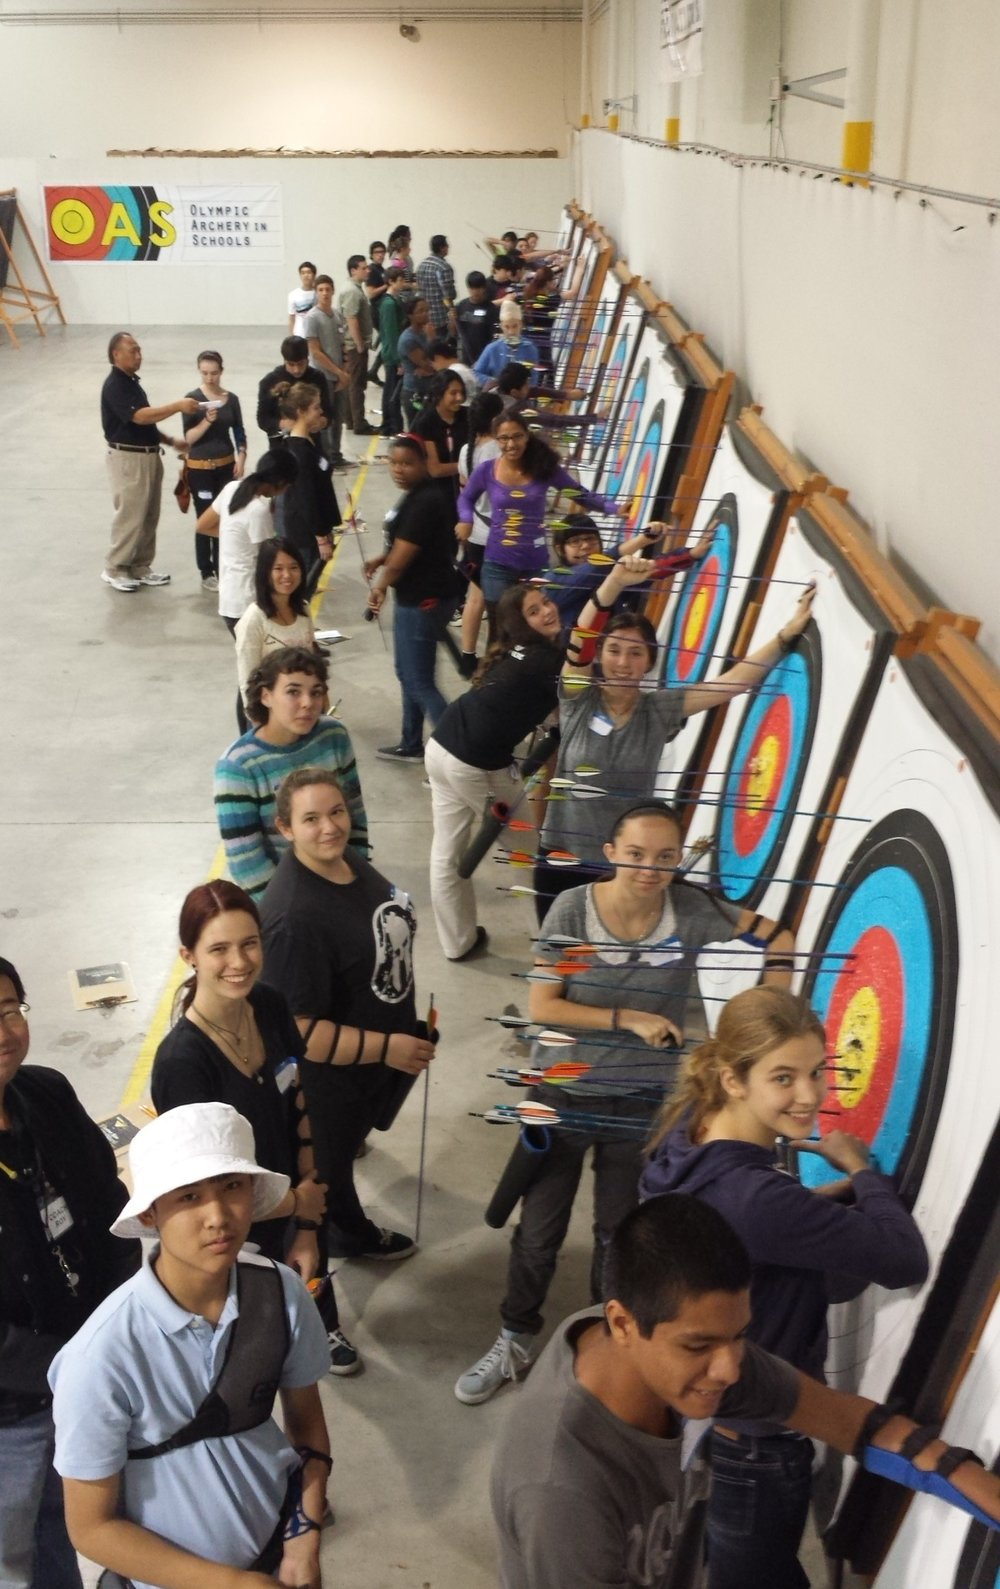 Fifty-five archers and coaches met at the Easton Van Nuys Archery Center for a day of learning, practice, and competition.